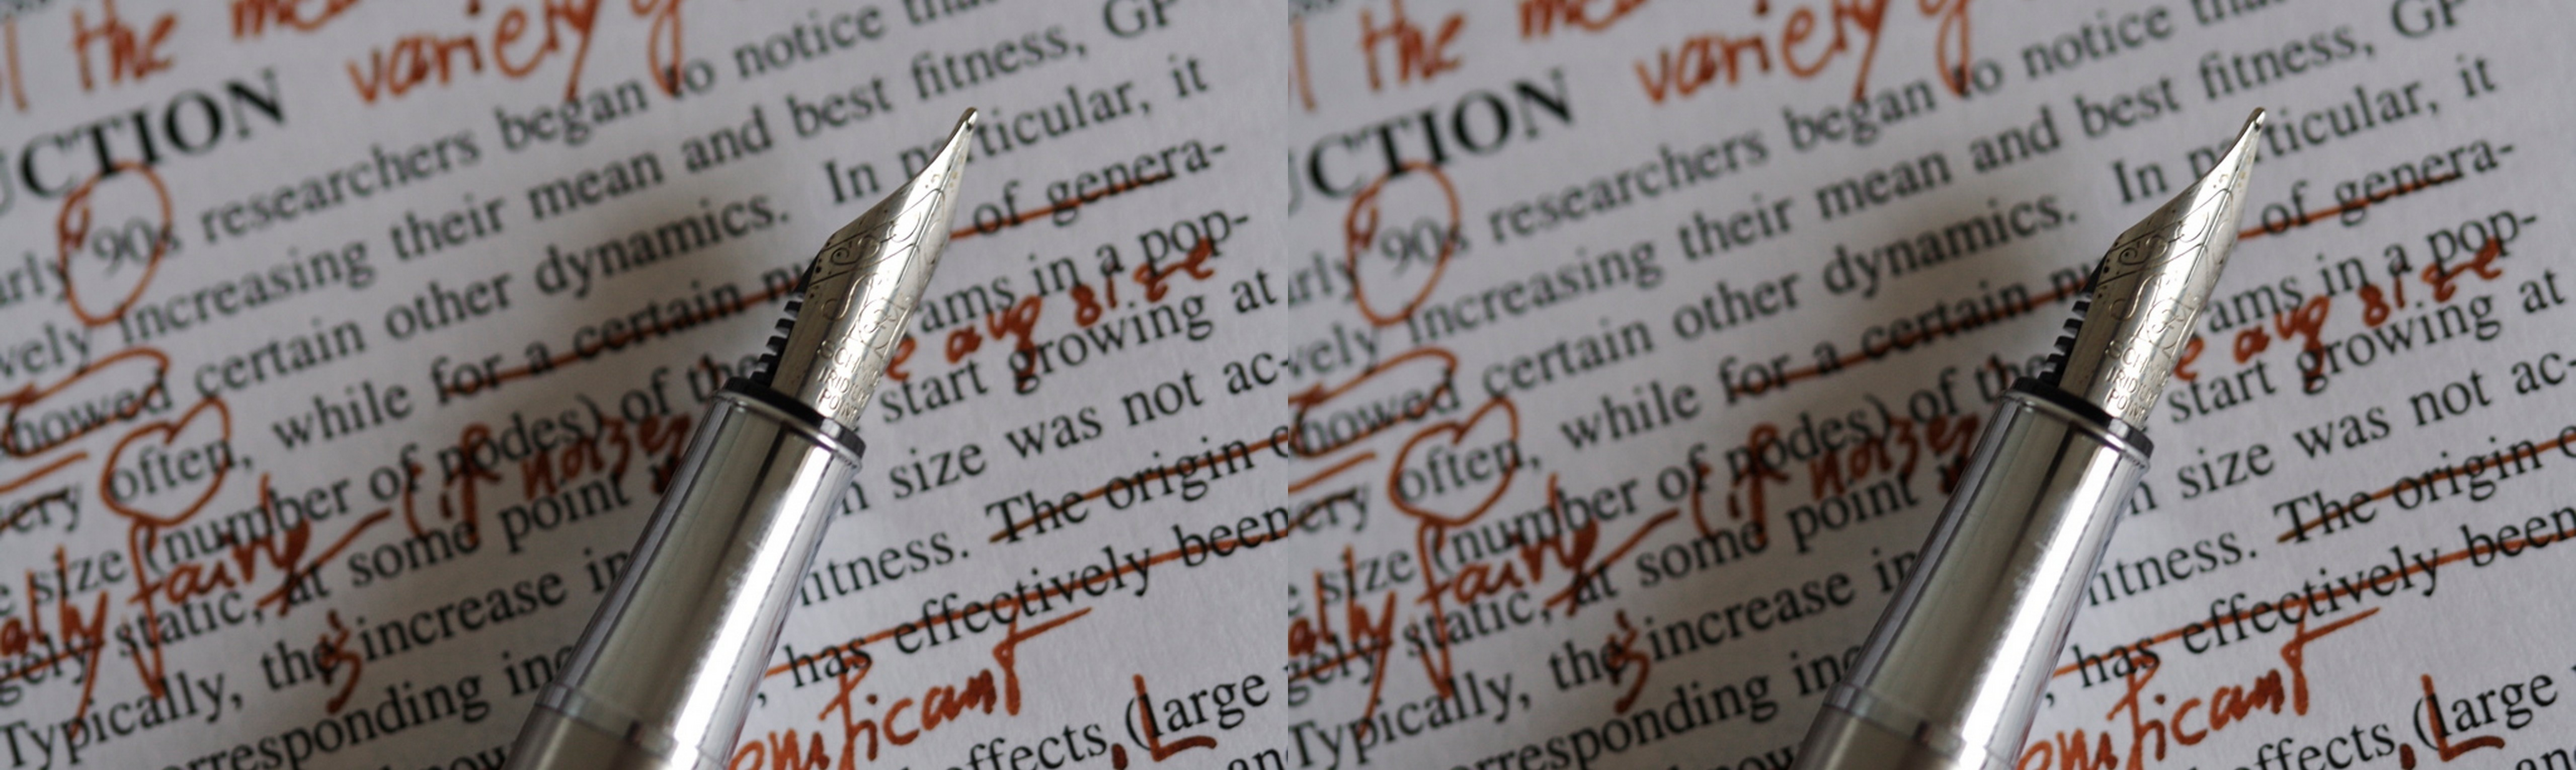 Essay proofreading and editing documents